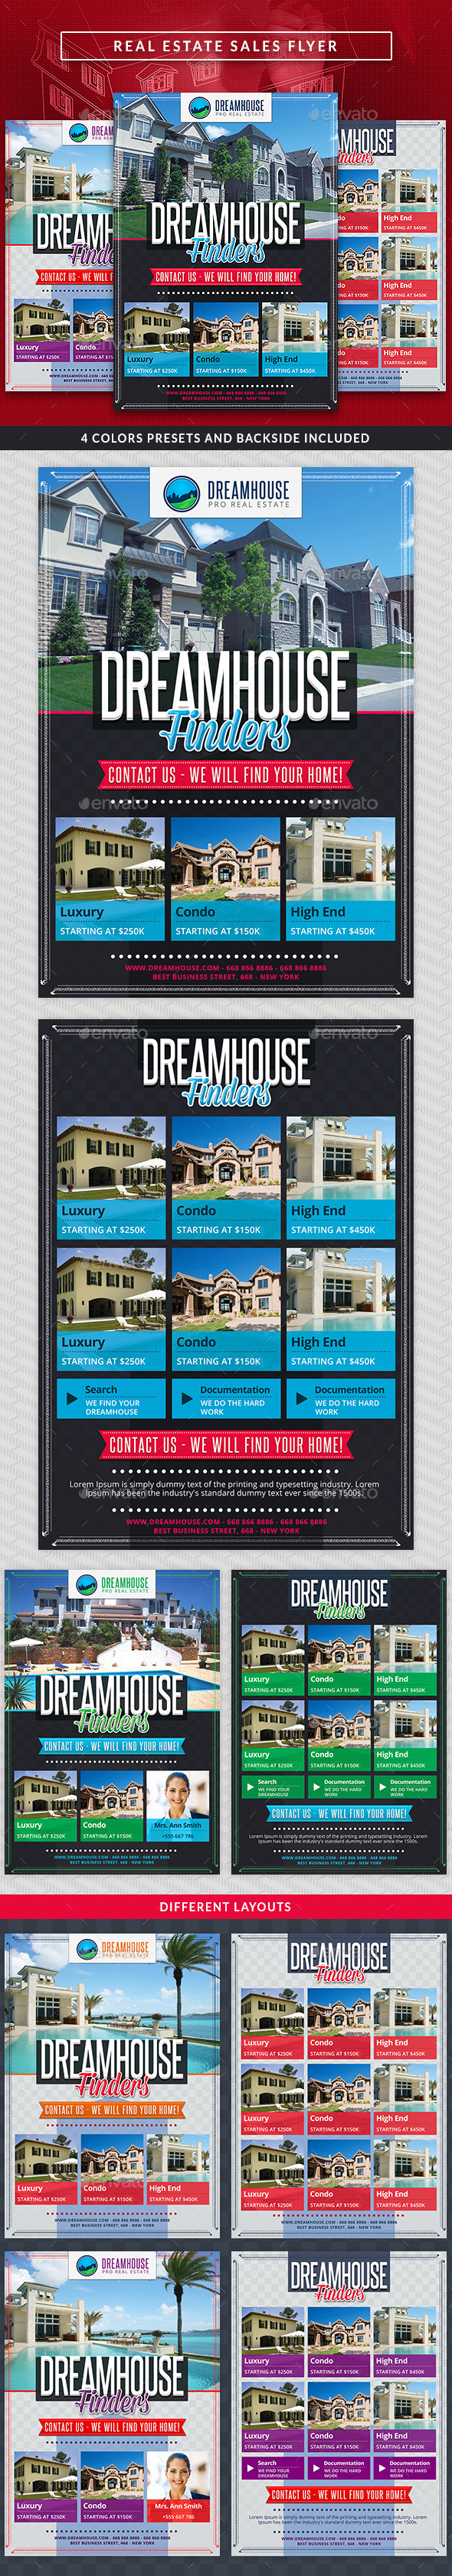 GraphicRiver Real Estate Sales Commerce Flyer 10495252